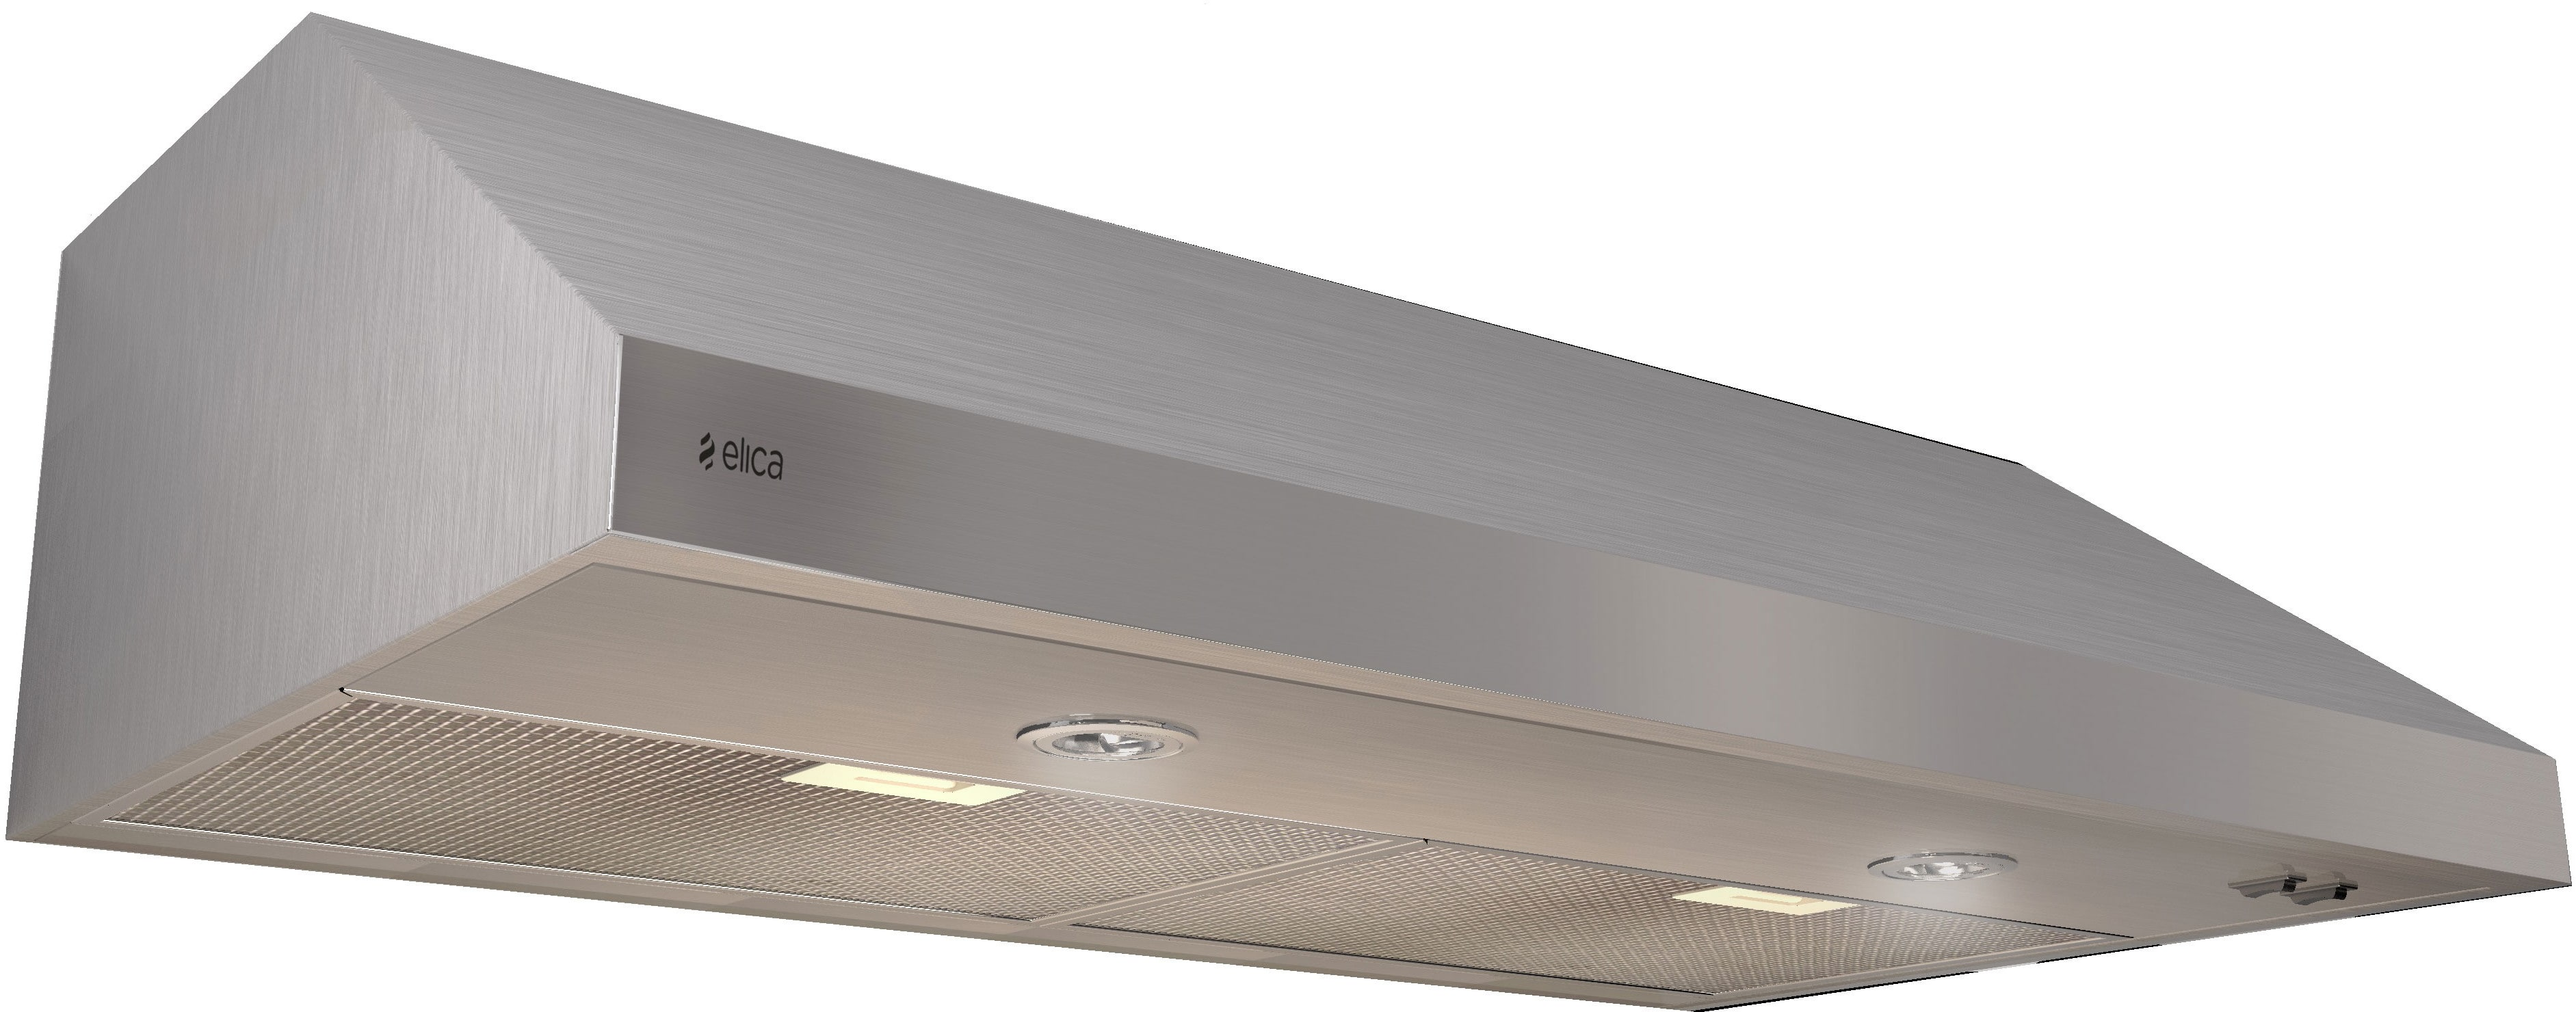 elica esr430ss 30 inch under cabinet range hood with 400 cfm